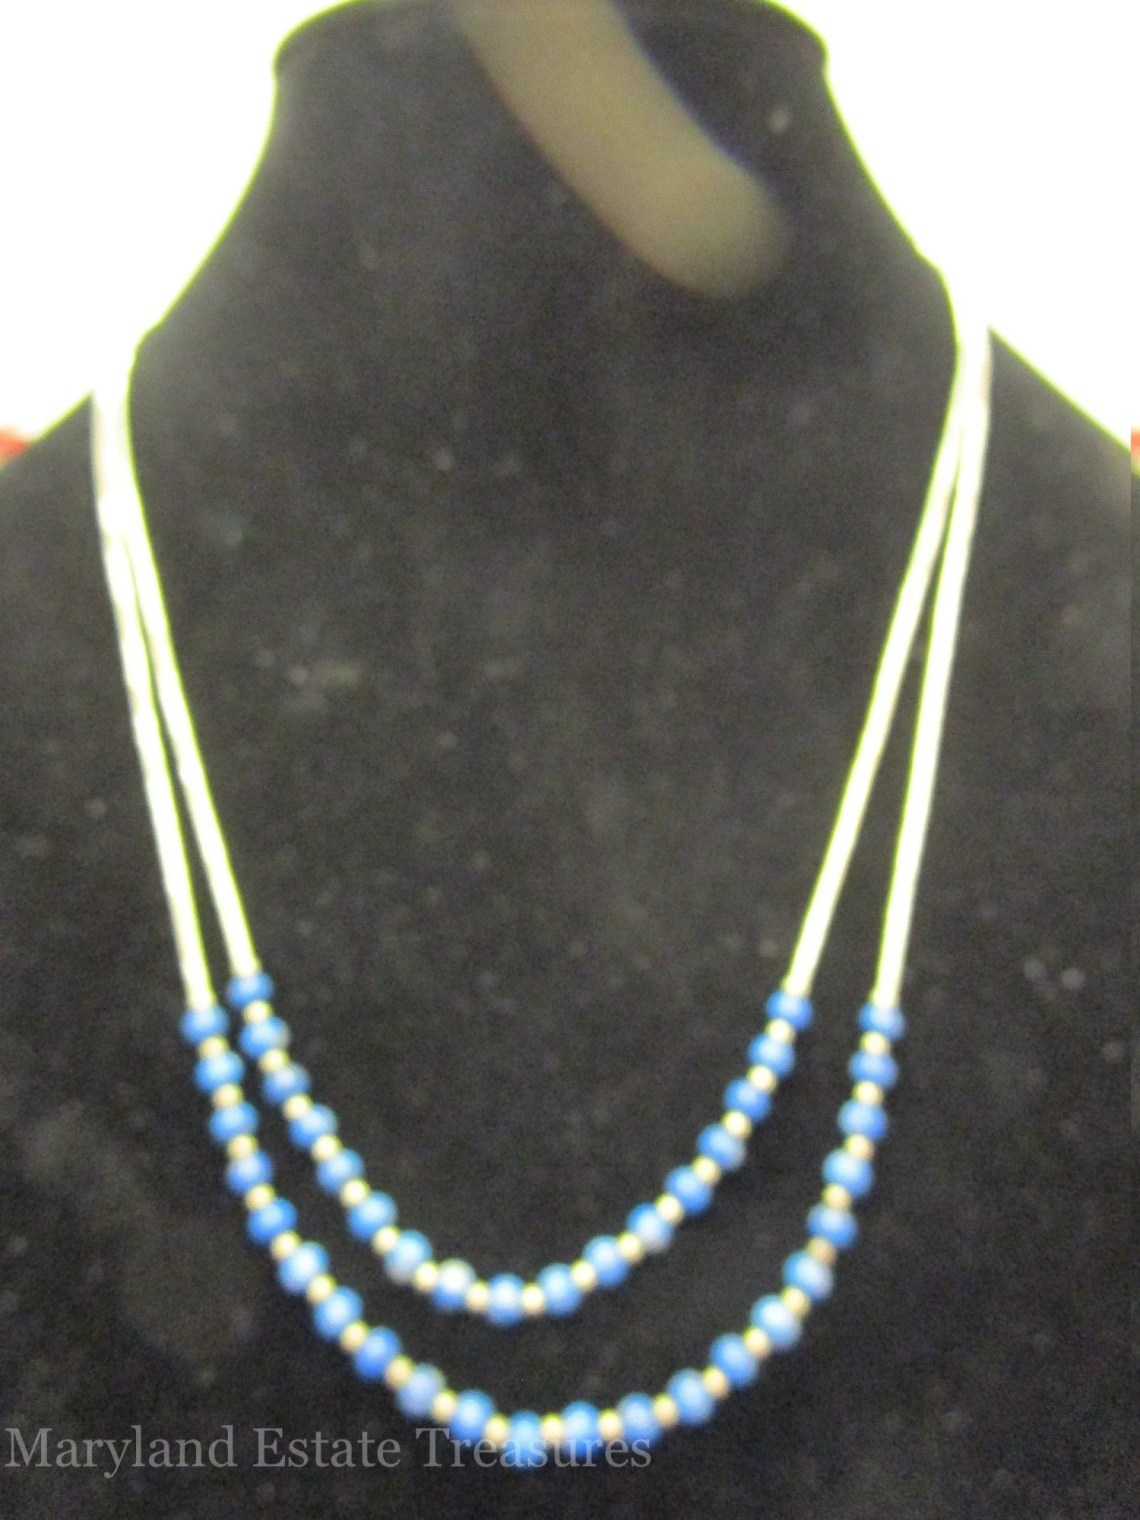 Multi Strand Sterling Silver and Lapis Lazuli Necklace